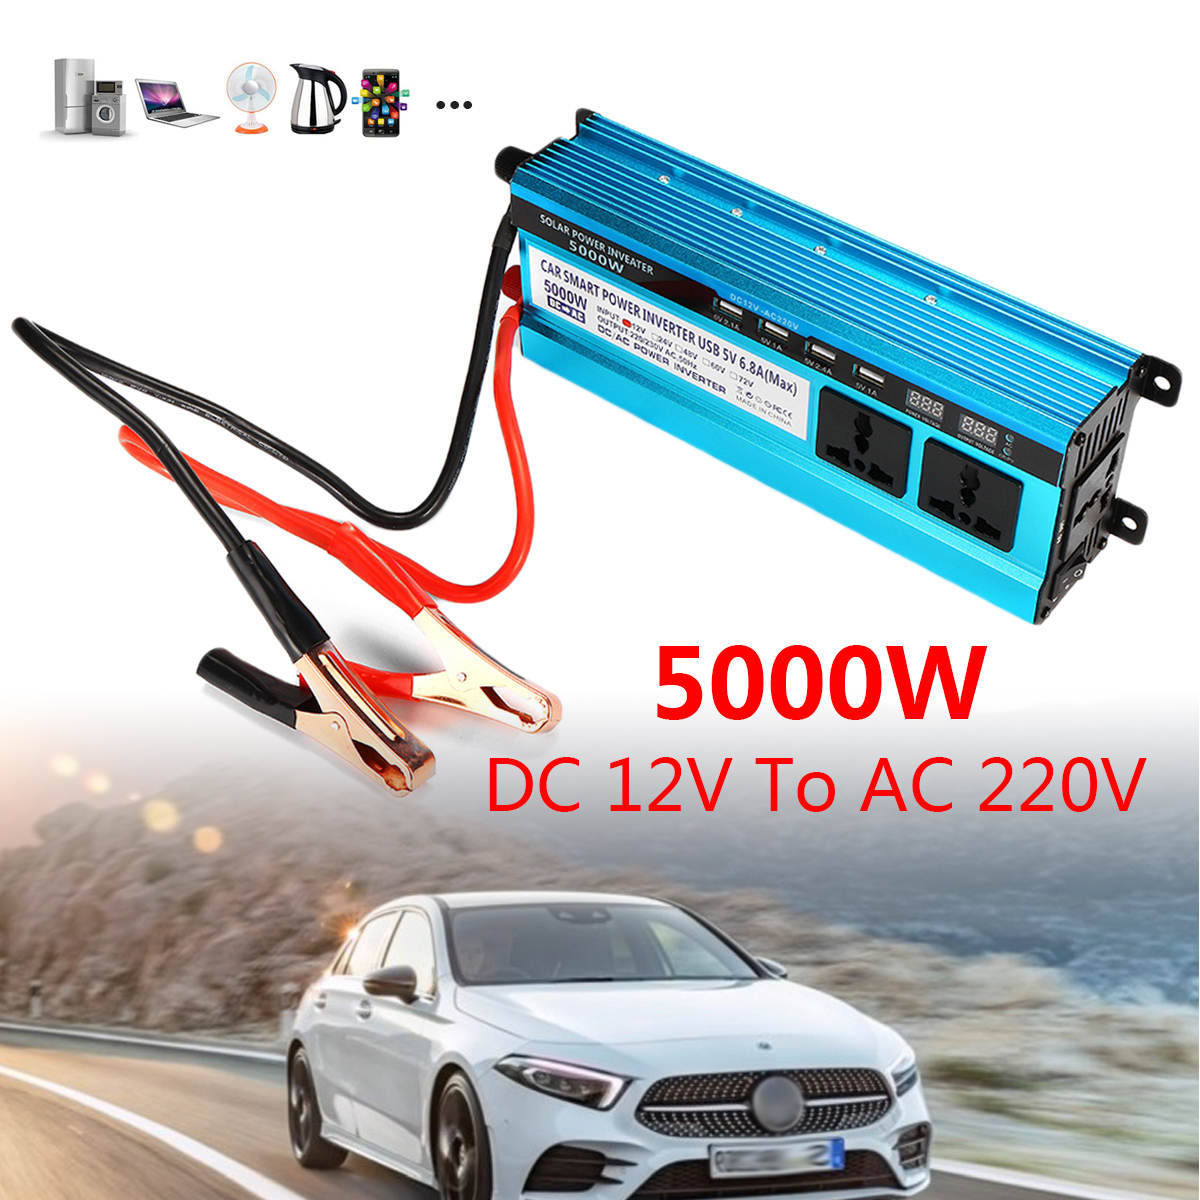 Voltage Transformer Peak 5000w 12v 24v Dc To 220vac Solar Power Usd 1199 36 White Led Circuit Board Rv Boat Light Bulb 1156 Inverter Dual Screens Modified Sine Wave Converter Protect In Car Inverters From